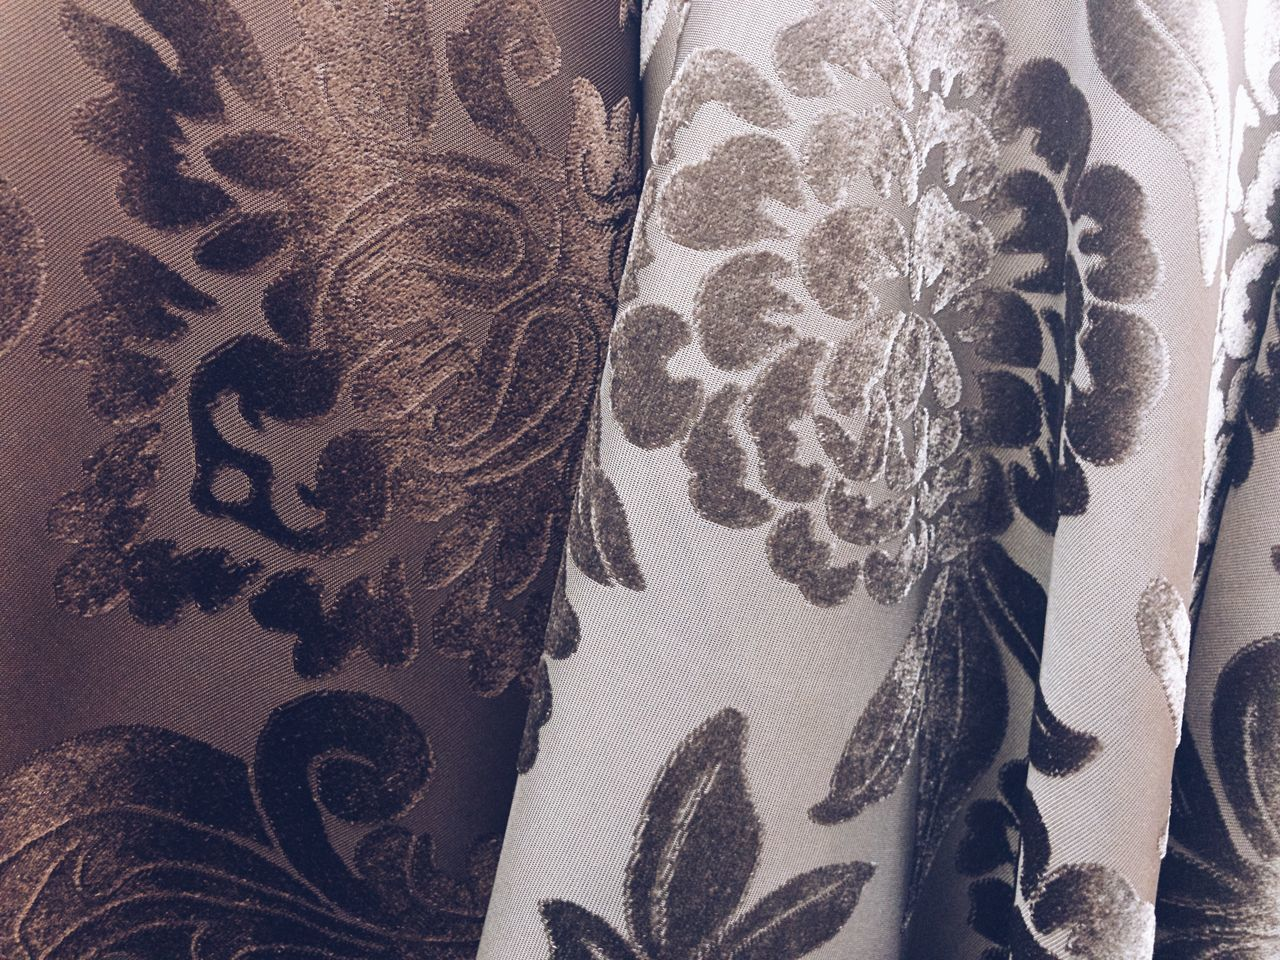 Fabrics Textile Floral Pattern Indoors  Netting Backgrounds Pattern One Person Women Formalwear Lace - Textile Lifestyles Full Frame Lingerie Close-up Fabric People Adult Adults Only Human Body Part Day